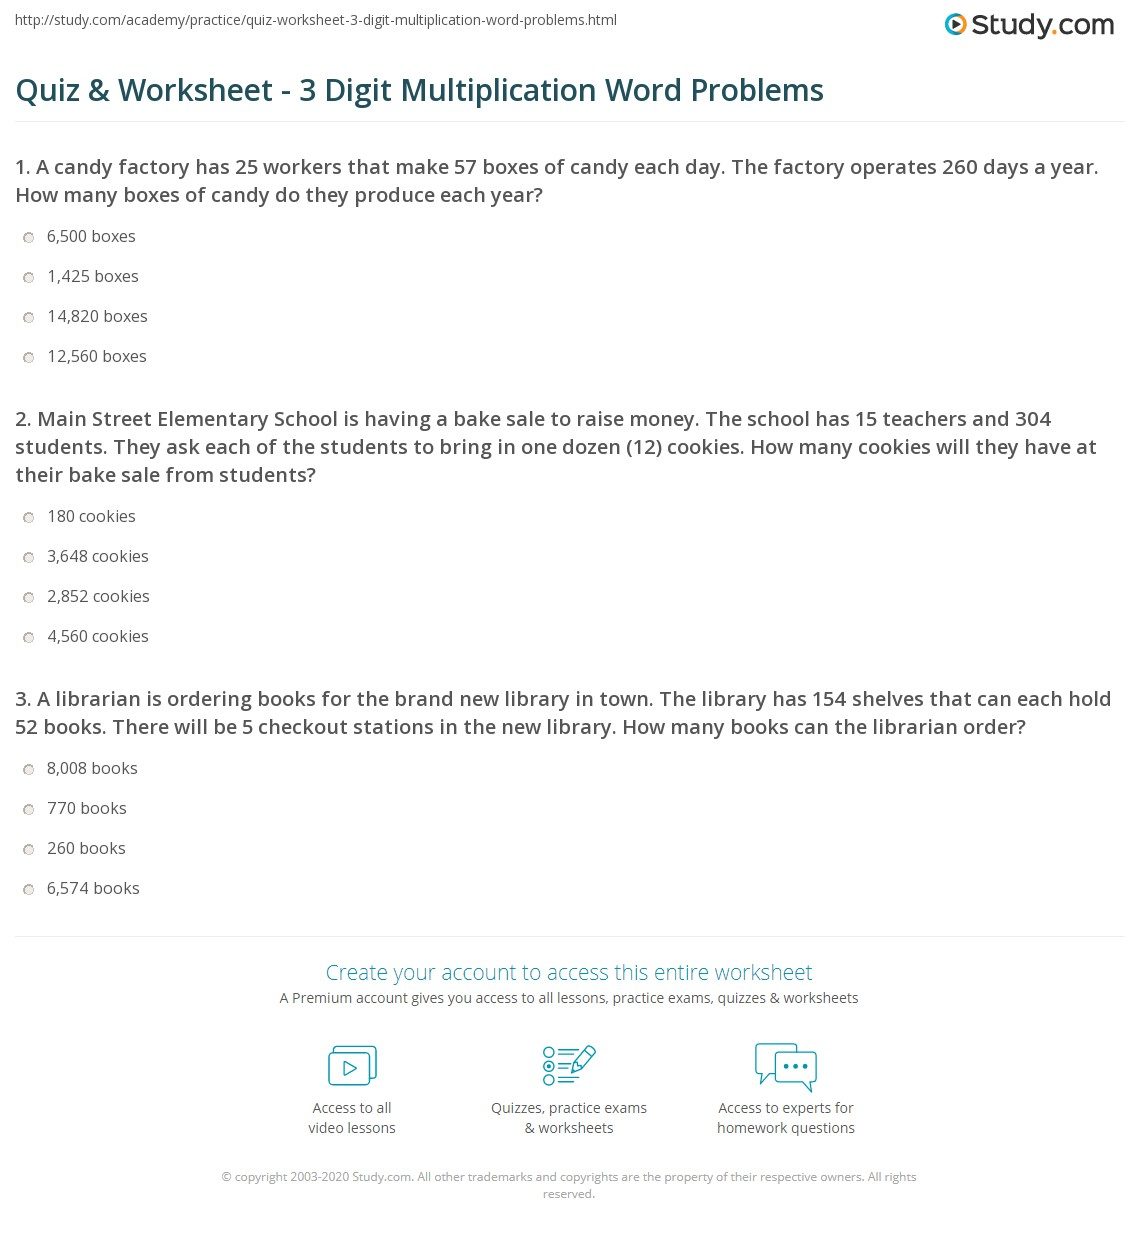 quiz  worksheet   digit multiplication word problems  studycom  main street elementary school is having a bake sale to raise money the  school has  teachers and  students they ask each of the students to  bring